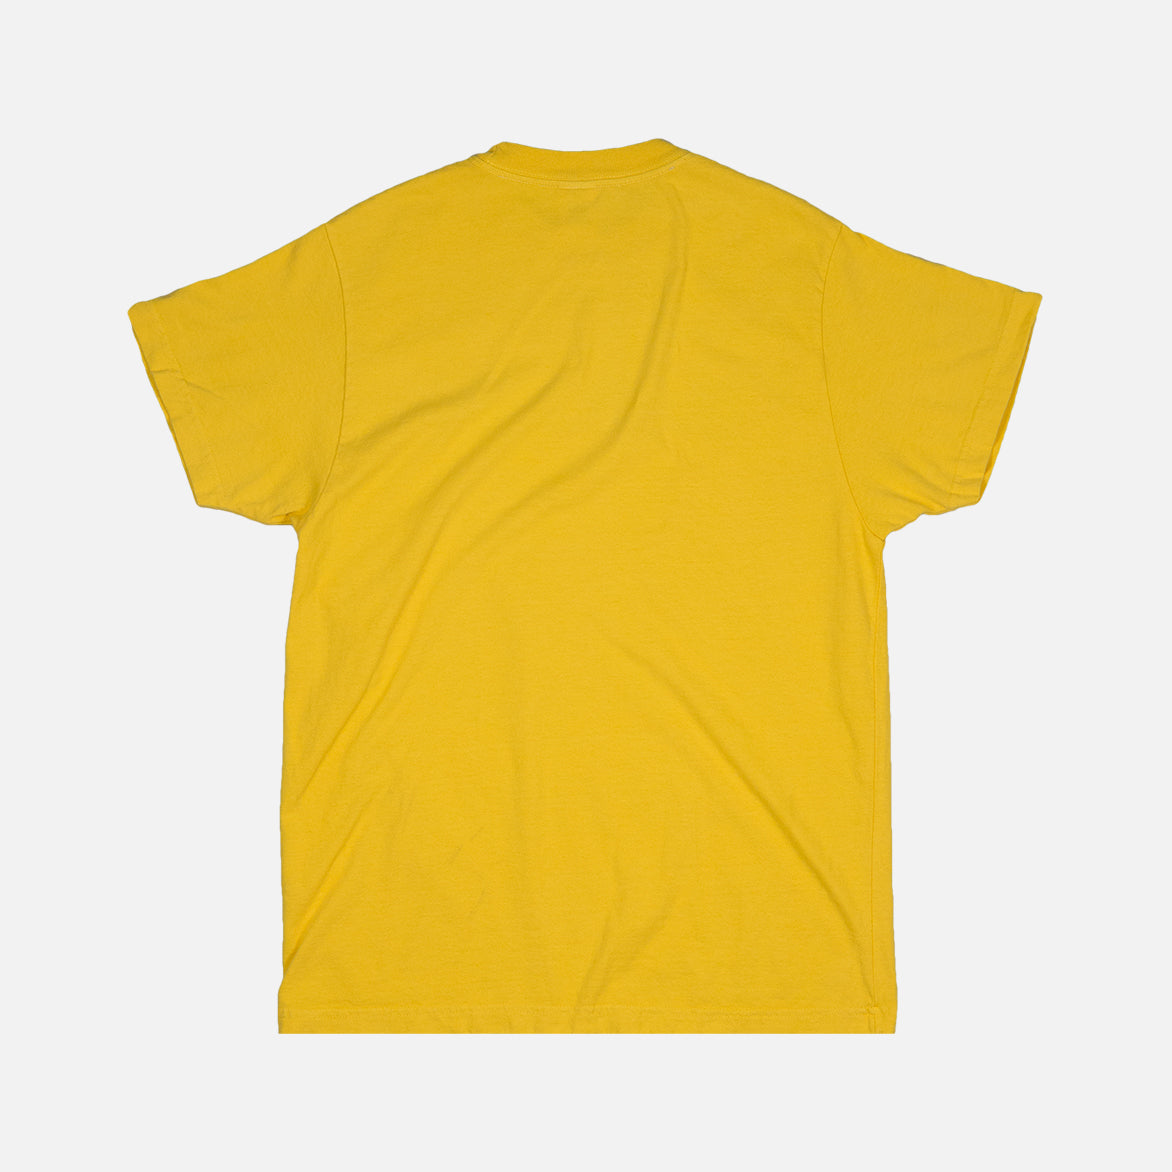 QUARTER MILE TEE - MIMOSA YELLOW